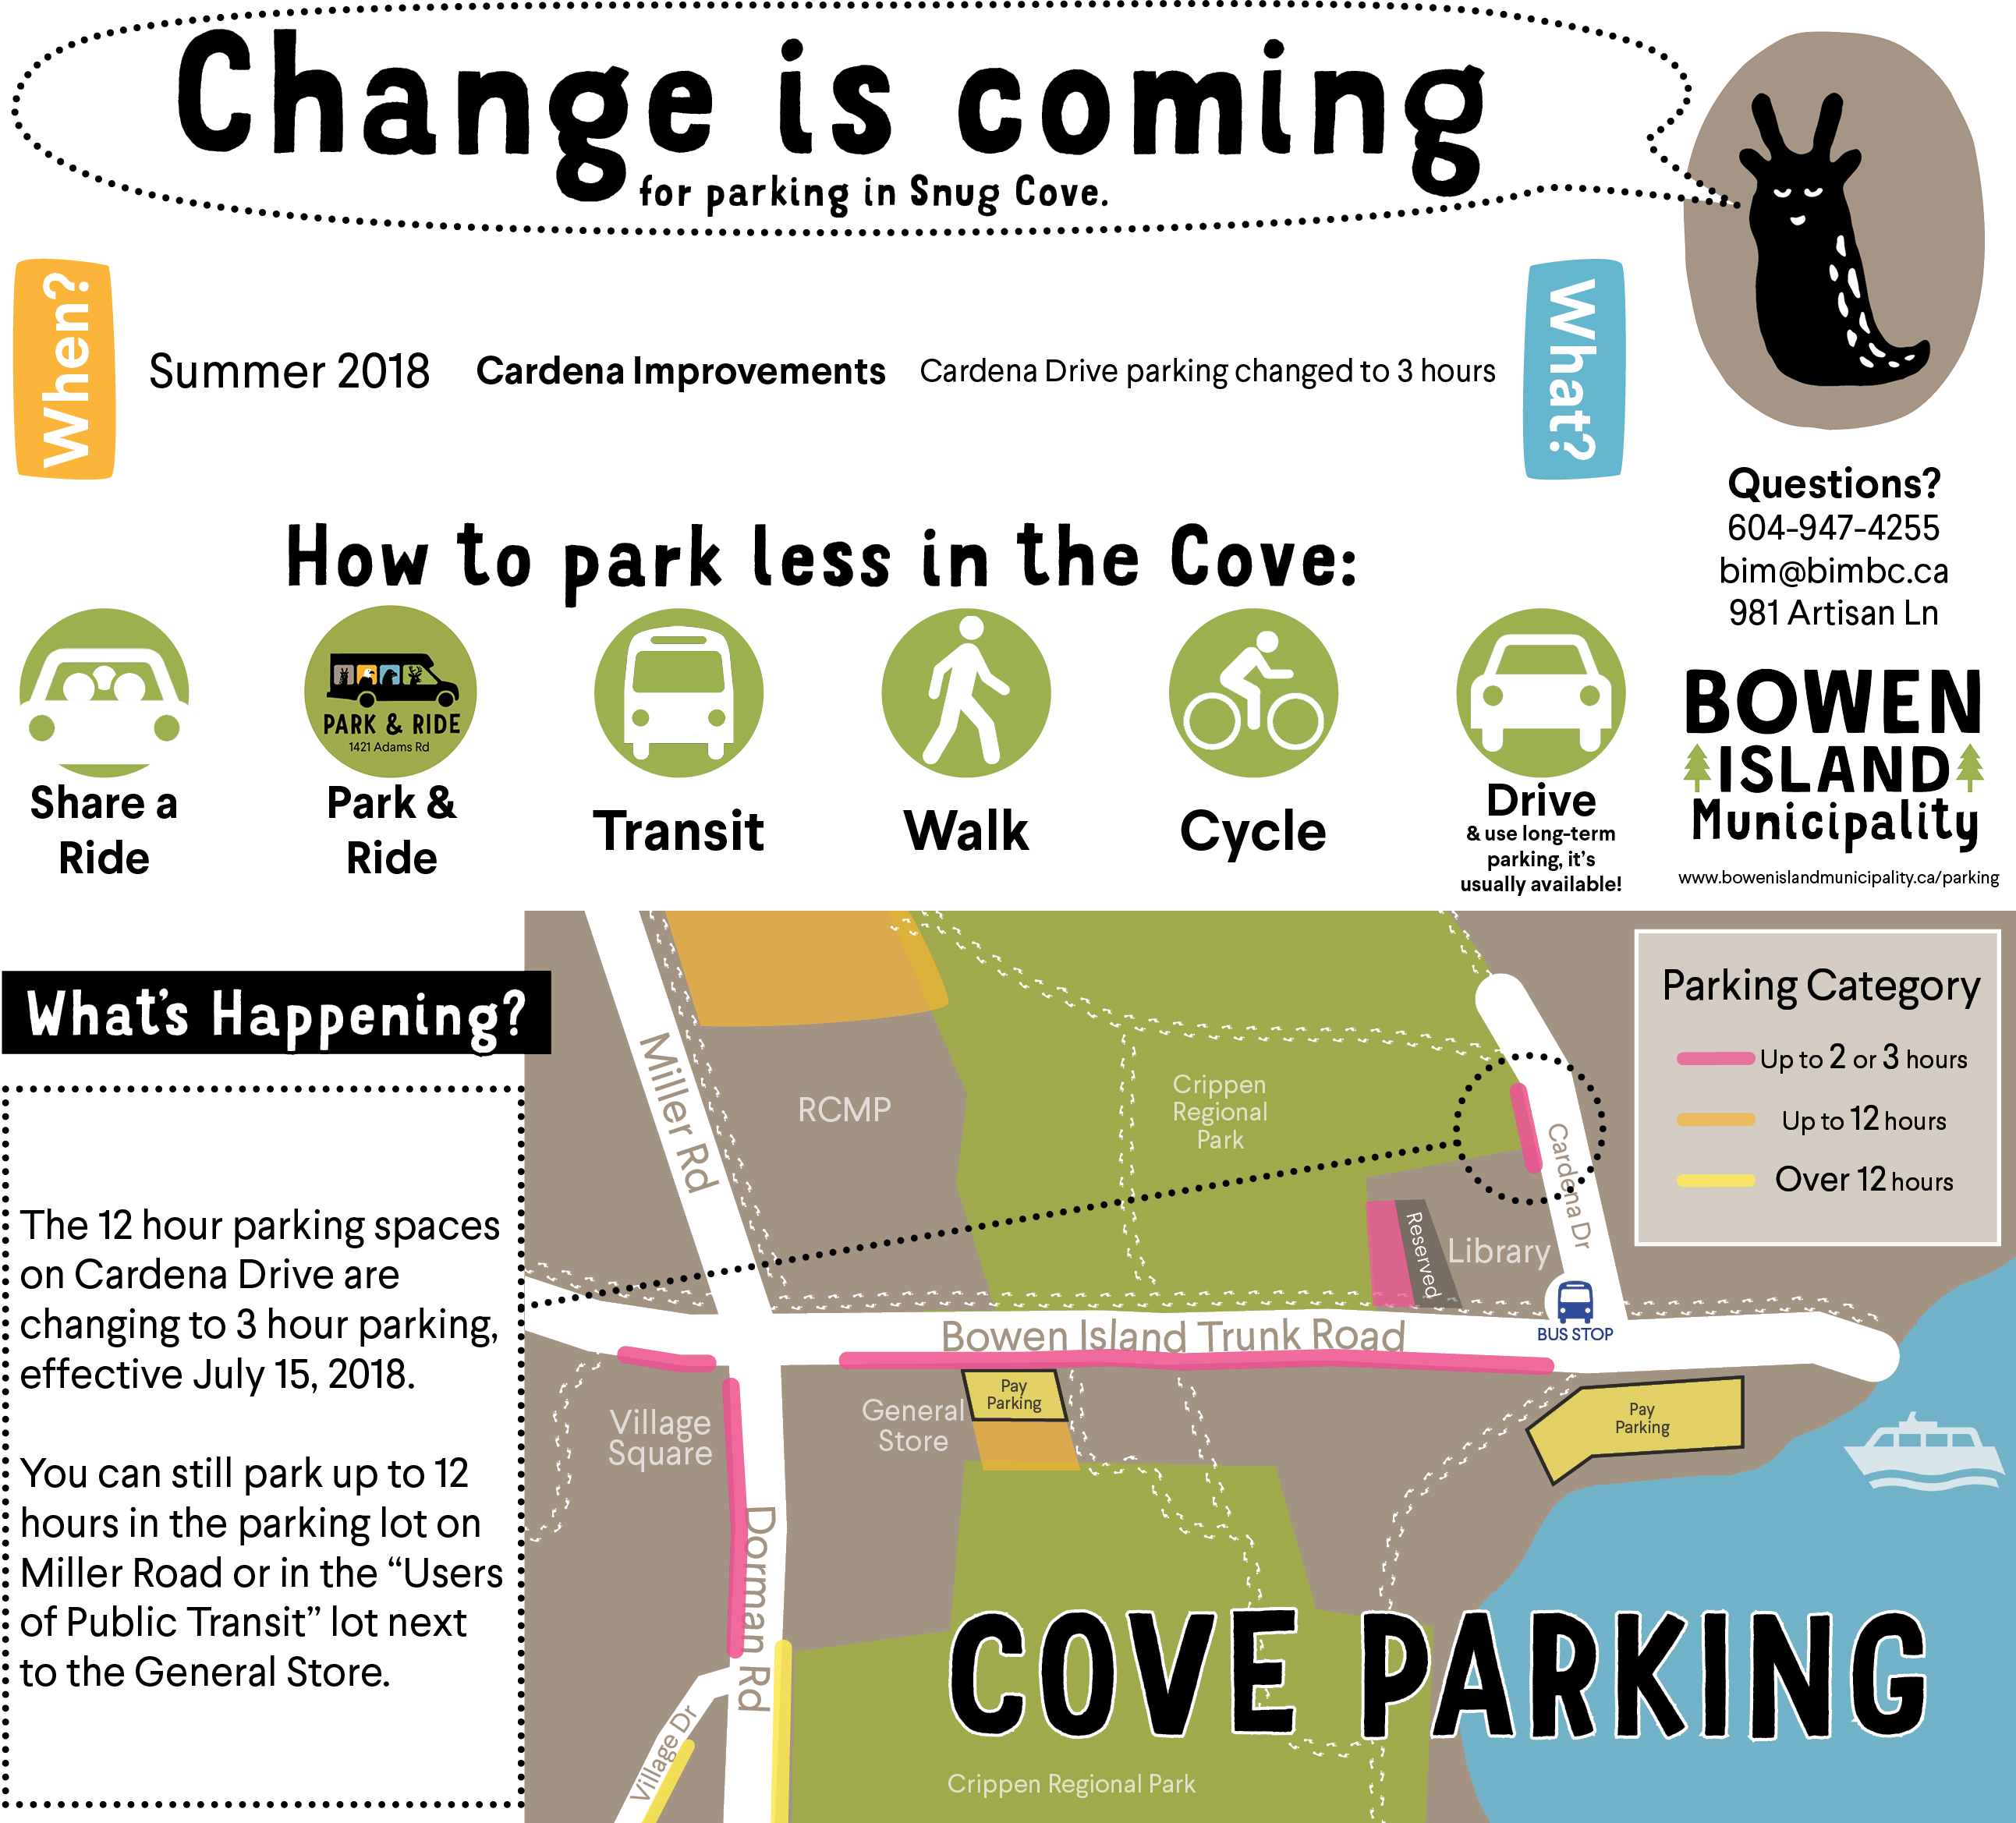 The parking spaces on Cardena Drive are changing from 12 hours to 2 hours, effective July 15, 2018